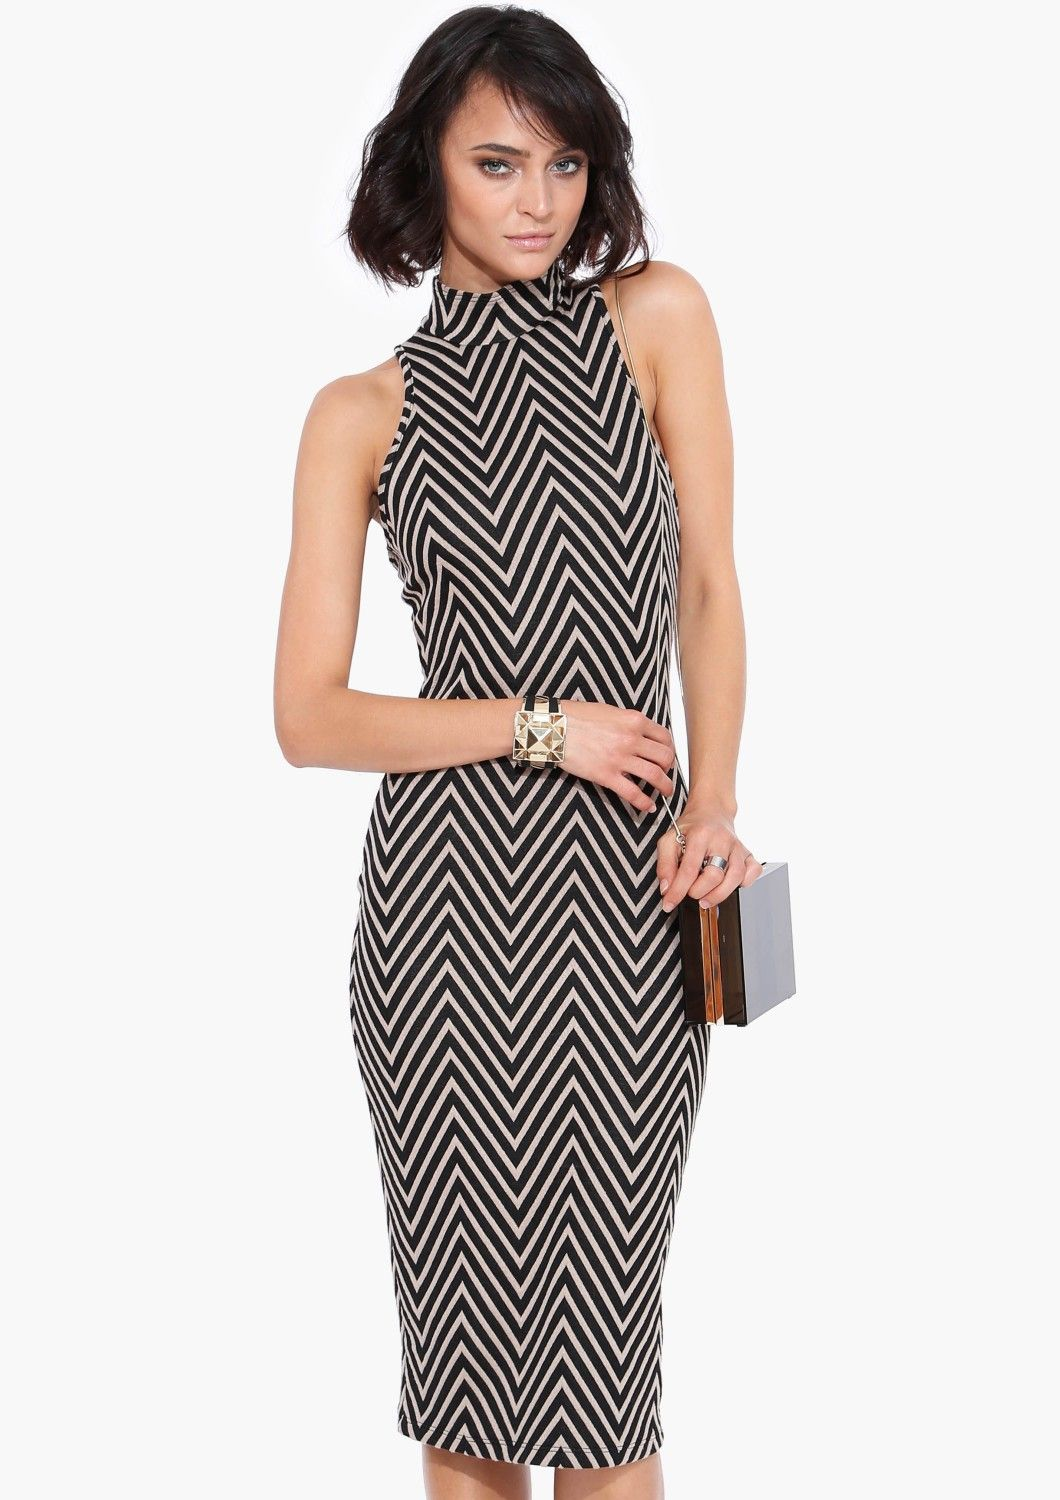 Chevron Midi Dress in Black | Necessary Clothing